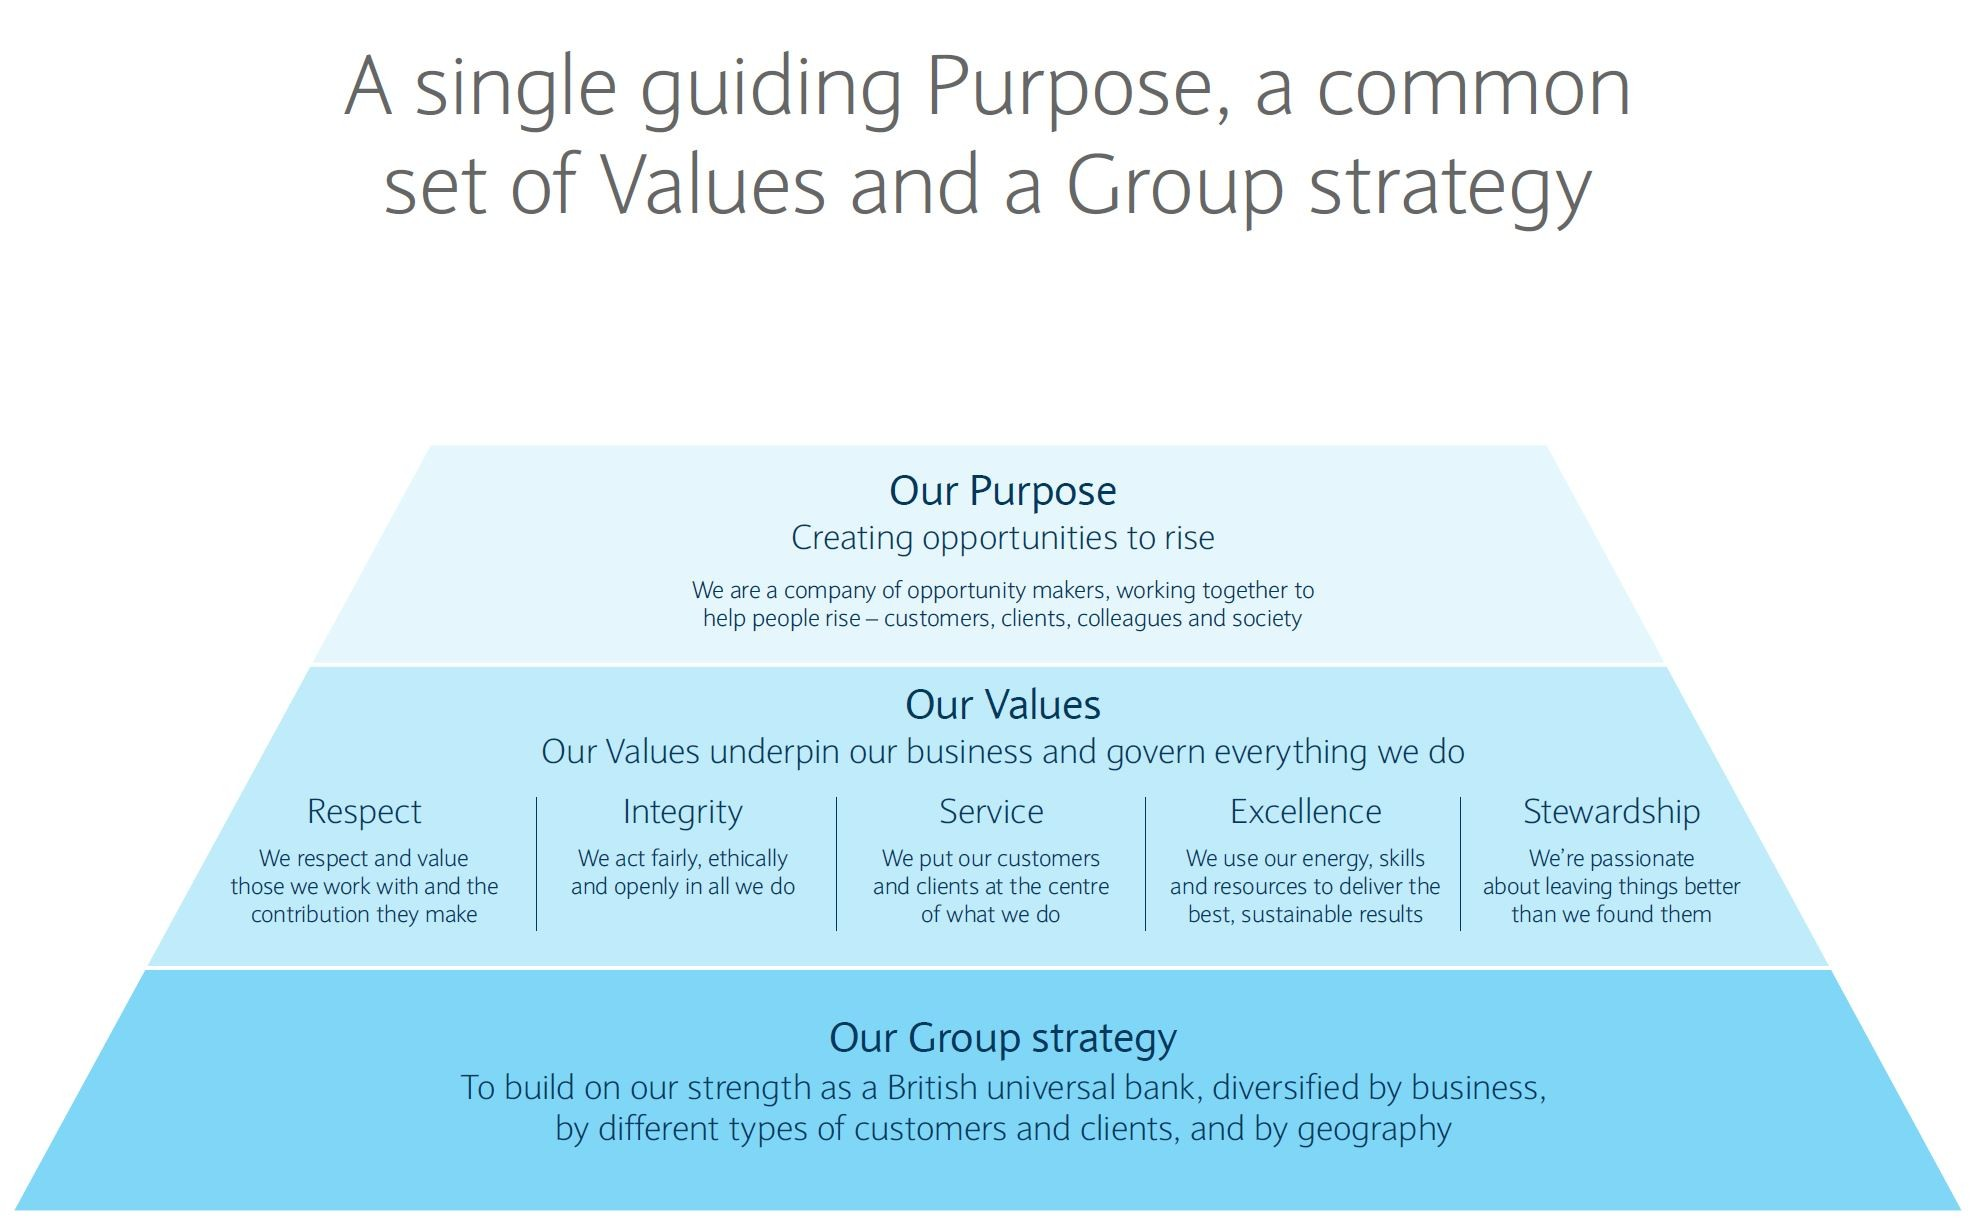 Barclays Quotes: How Do You Put Integrity Into Practice In Both Your